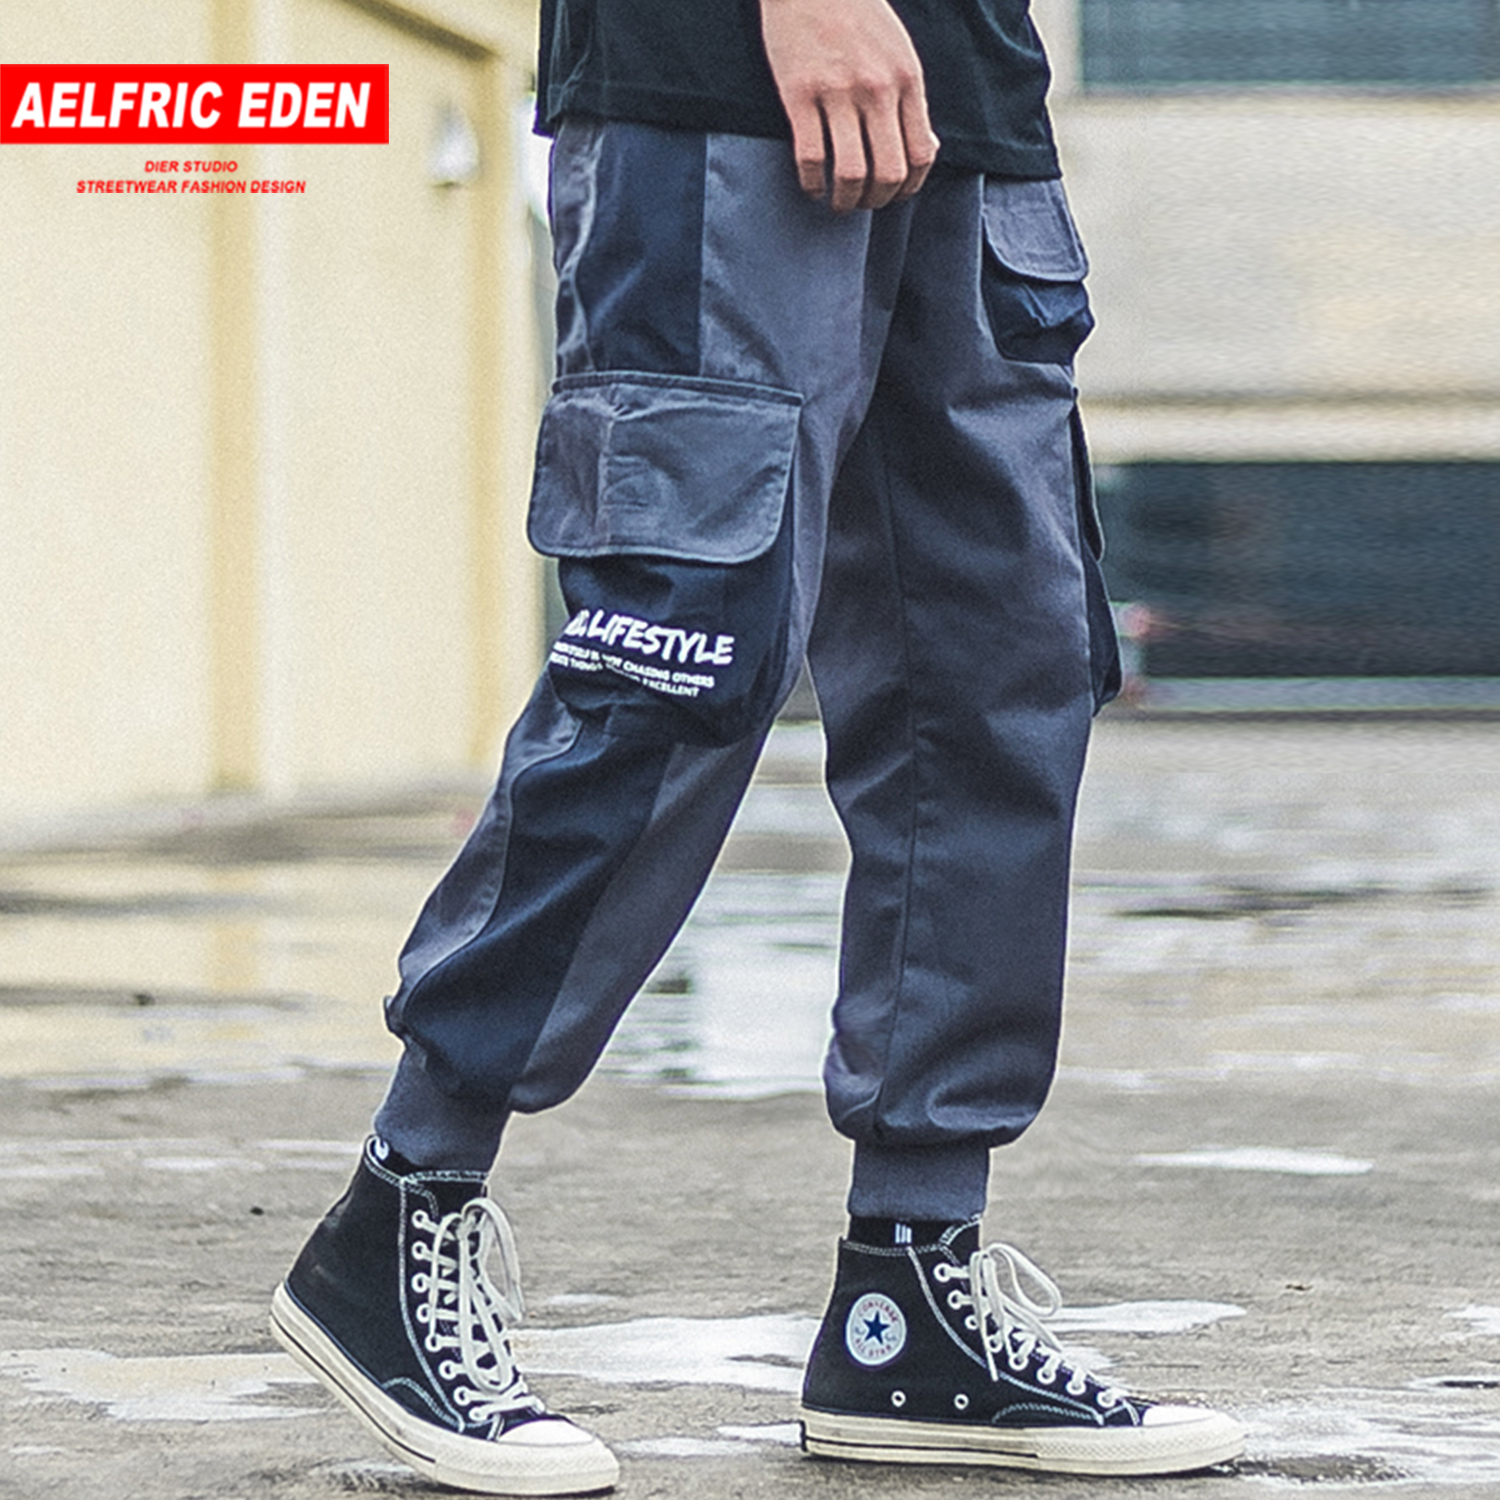 Aelfric Eden Multi Pockets Patchwork Cargo Pants Mens Harajuku 2019 Autumn Hip Hop Casual Joggers Trousers Streetwear Sweatpants